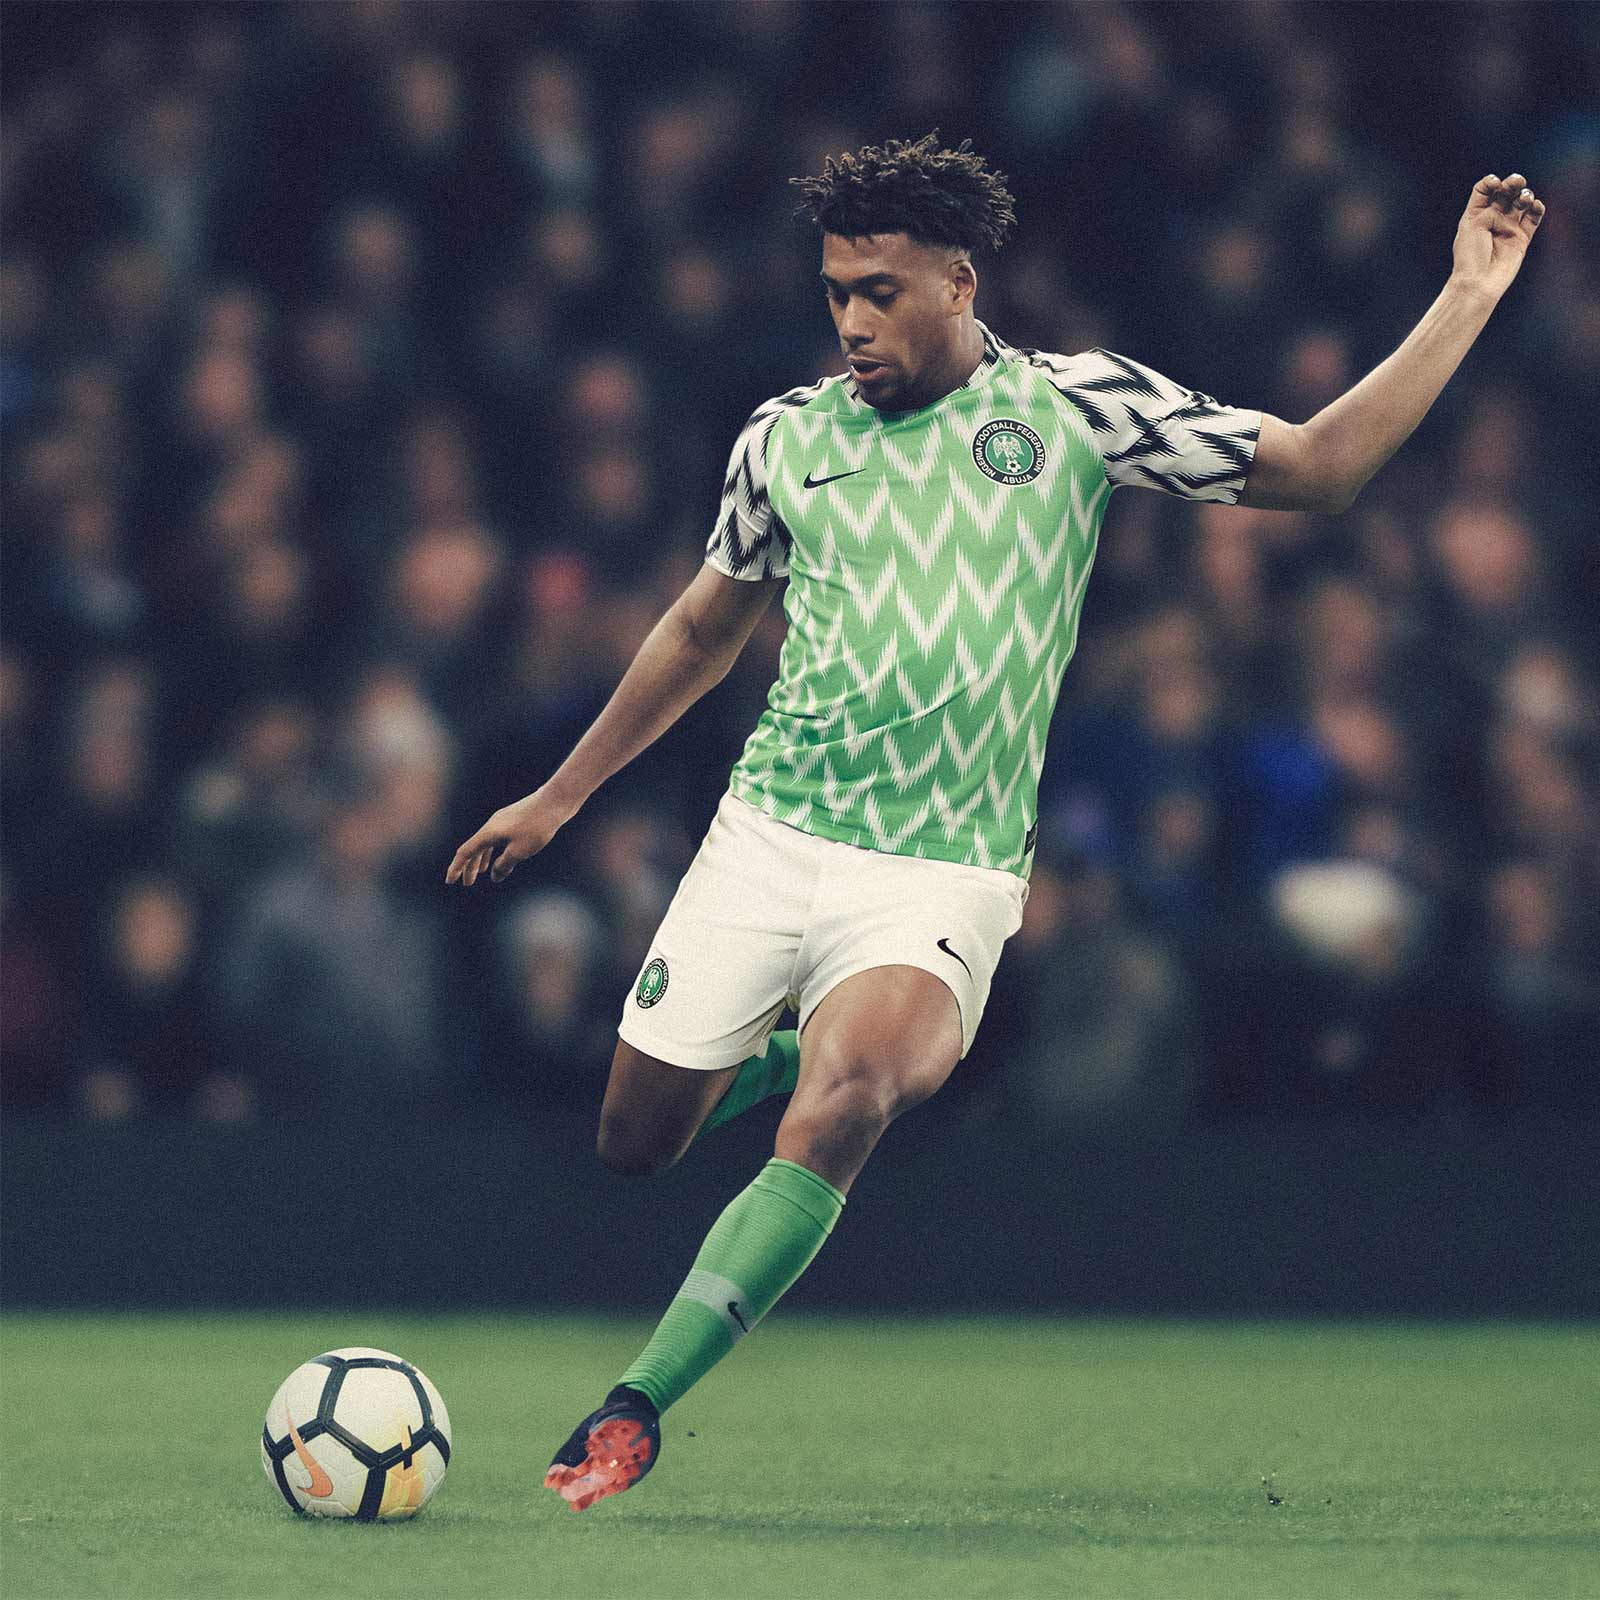 Latest News In Nigeria: Nigeria 2018 World Cup Home Kit Revealed